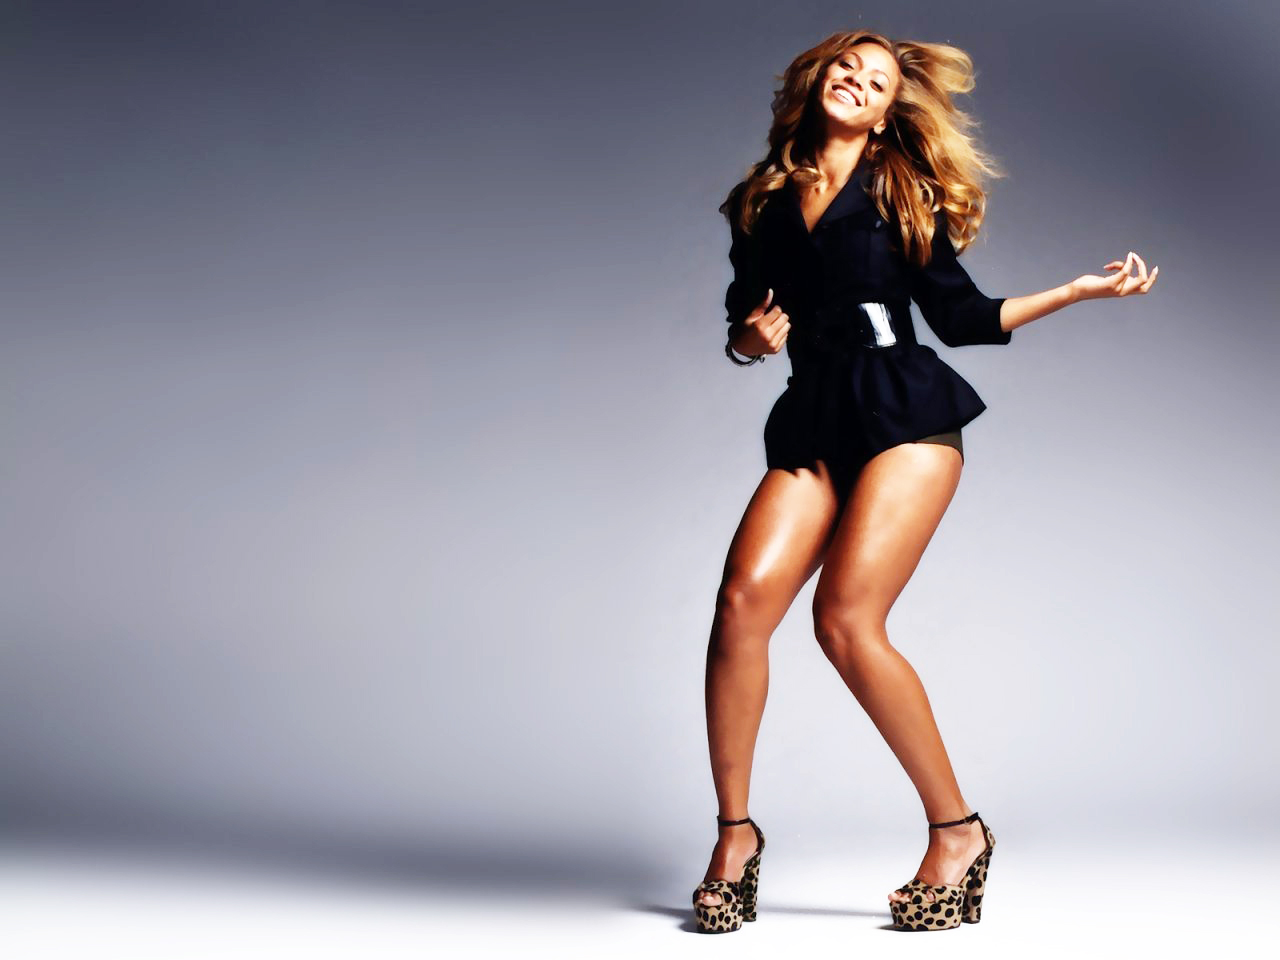 beyonce sexy wallpapers beyonce wallpapers